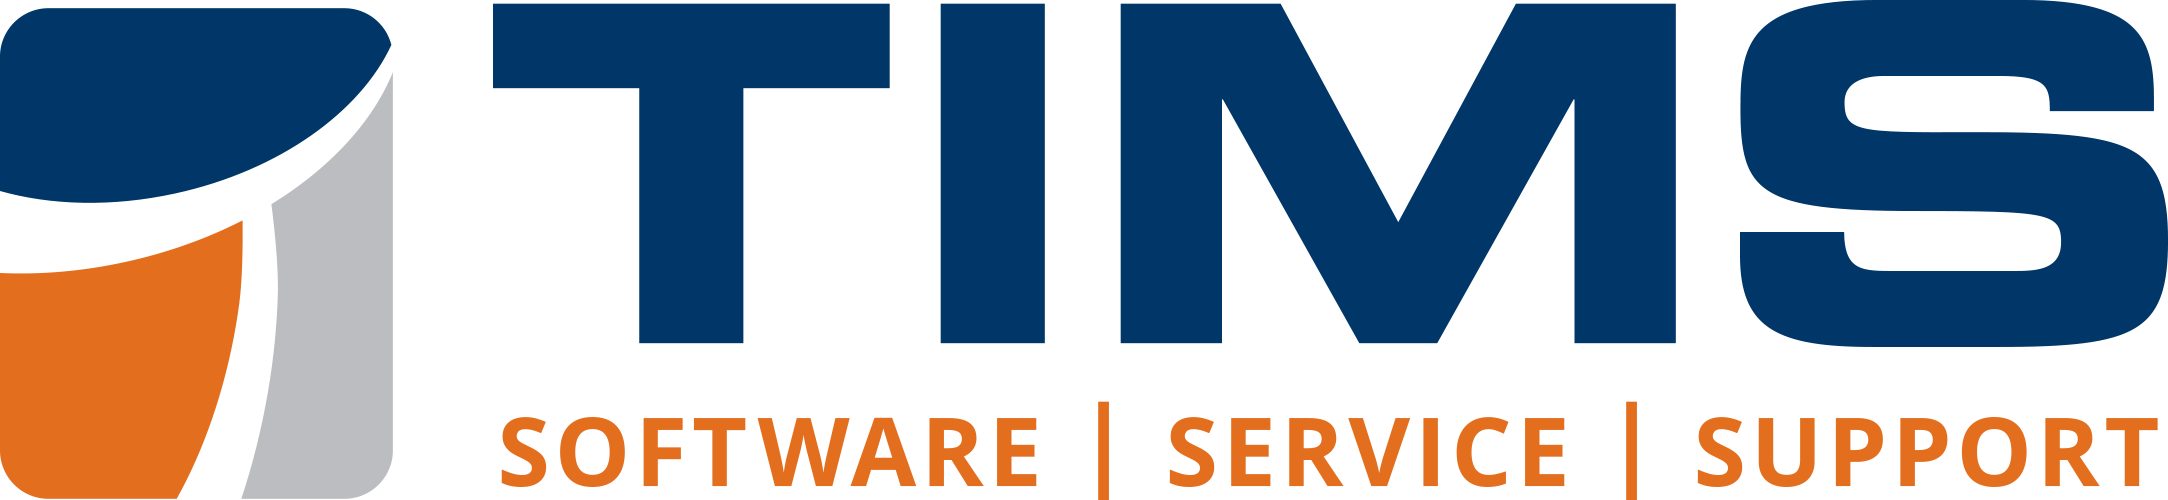 OFFICIAL-TIMS-Software-Service-Support-Full-Color-Open-Sans